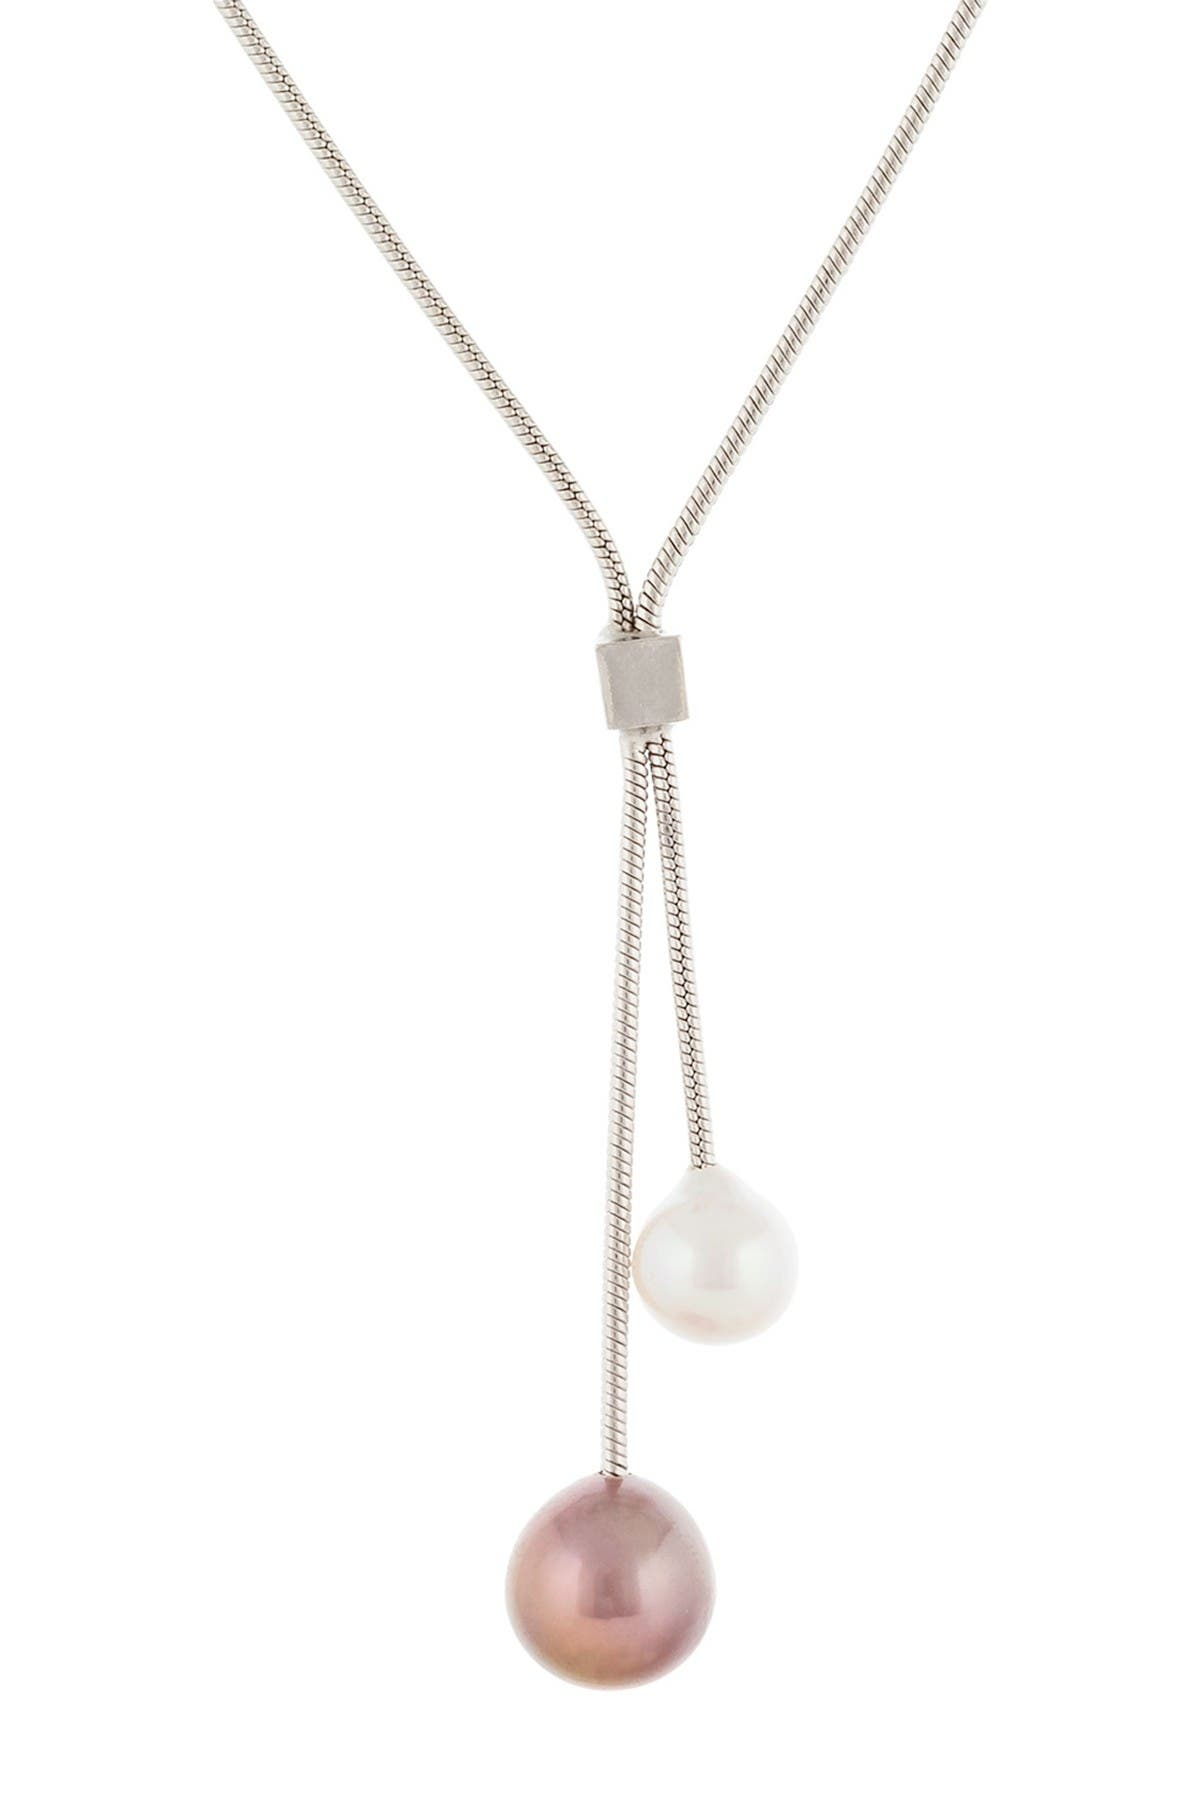 Splendid Pearls Sterling Silver 9-10mm Fancy Multicolored Cultured Freshwater Pearl Dangle Necklace at Nordstrom Rack